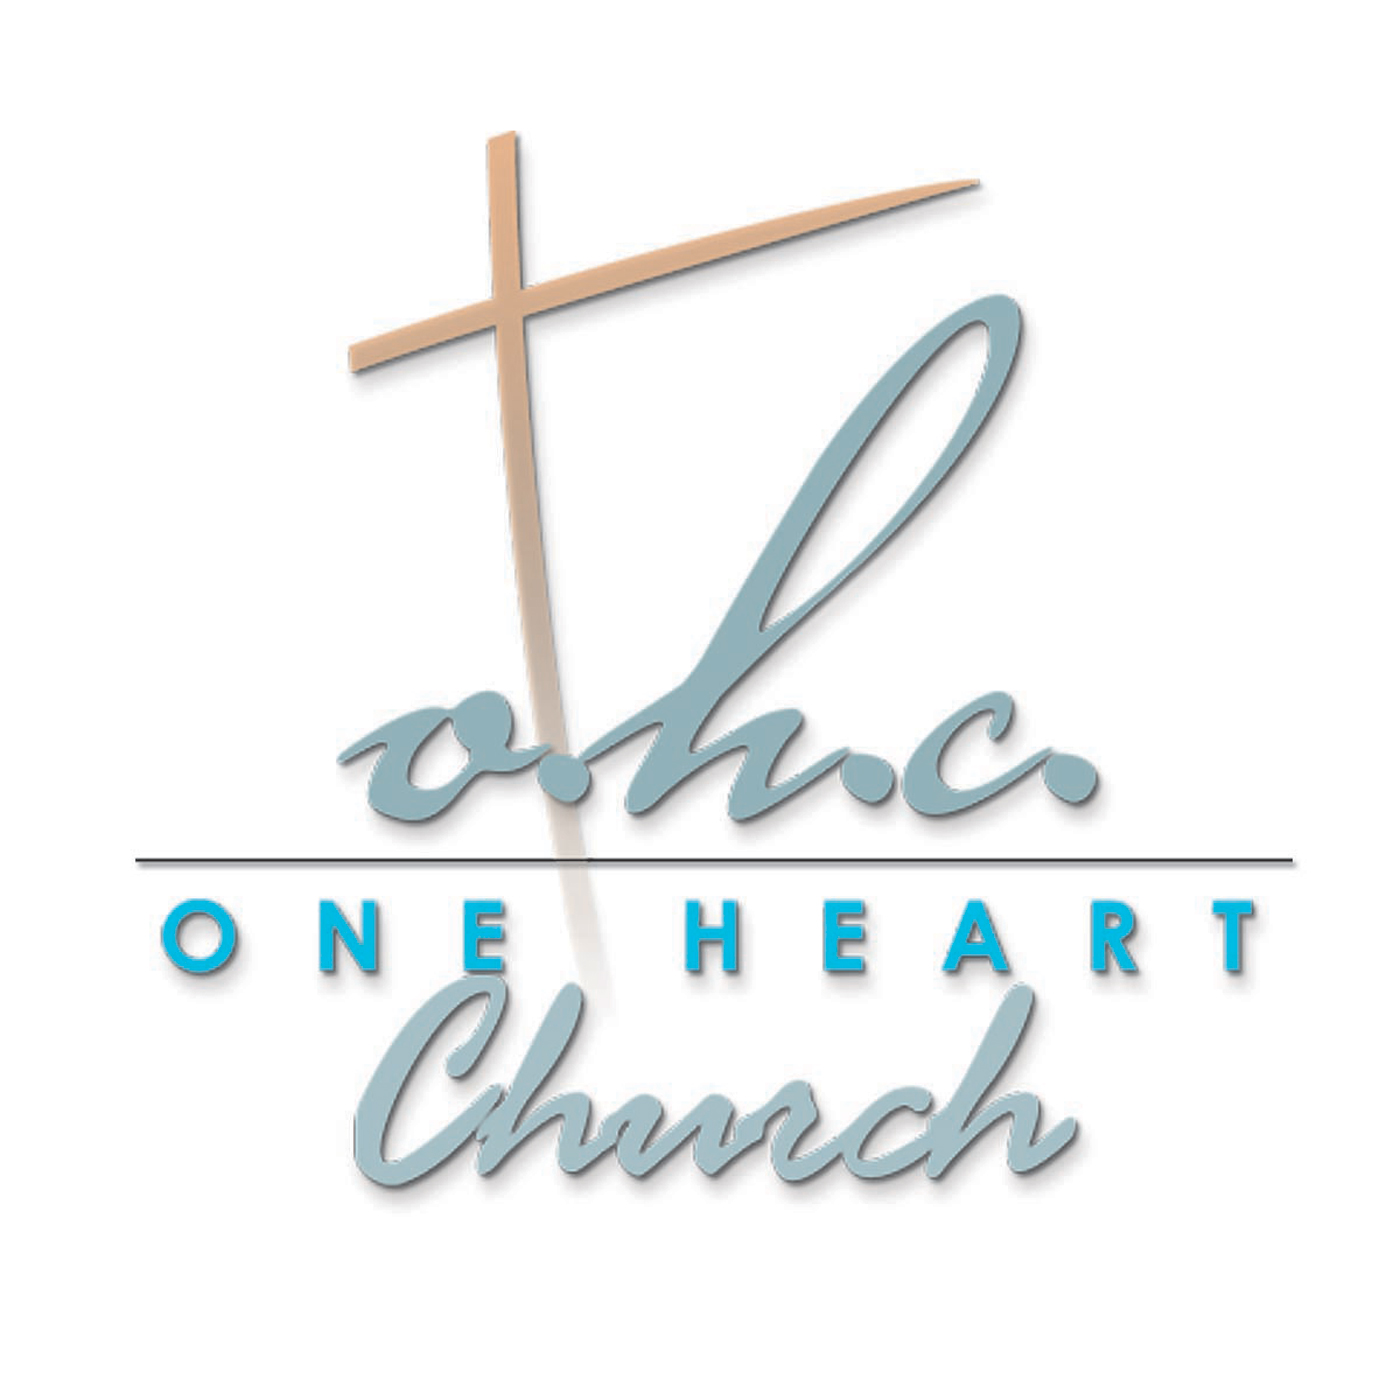 One Heart Church